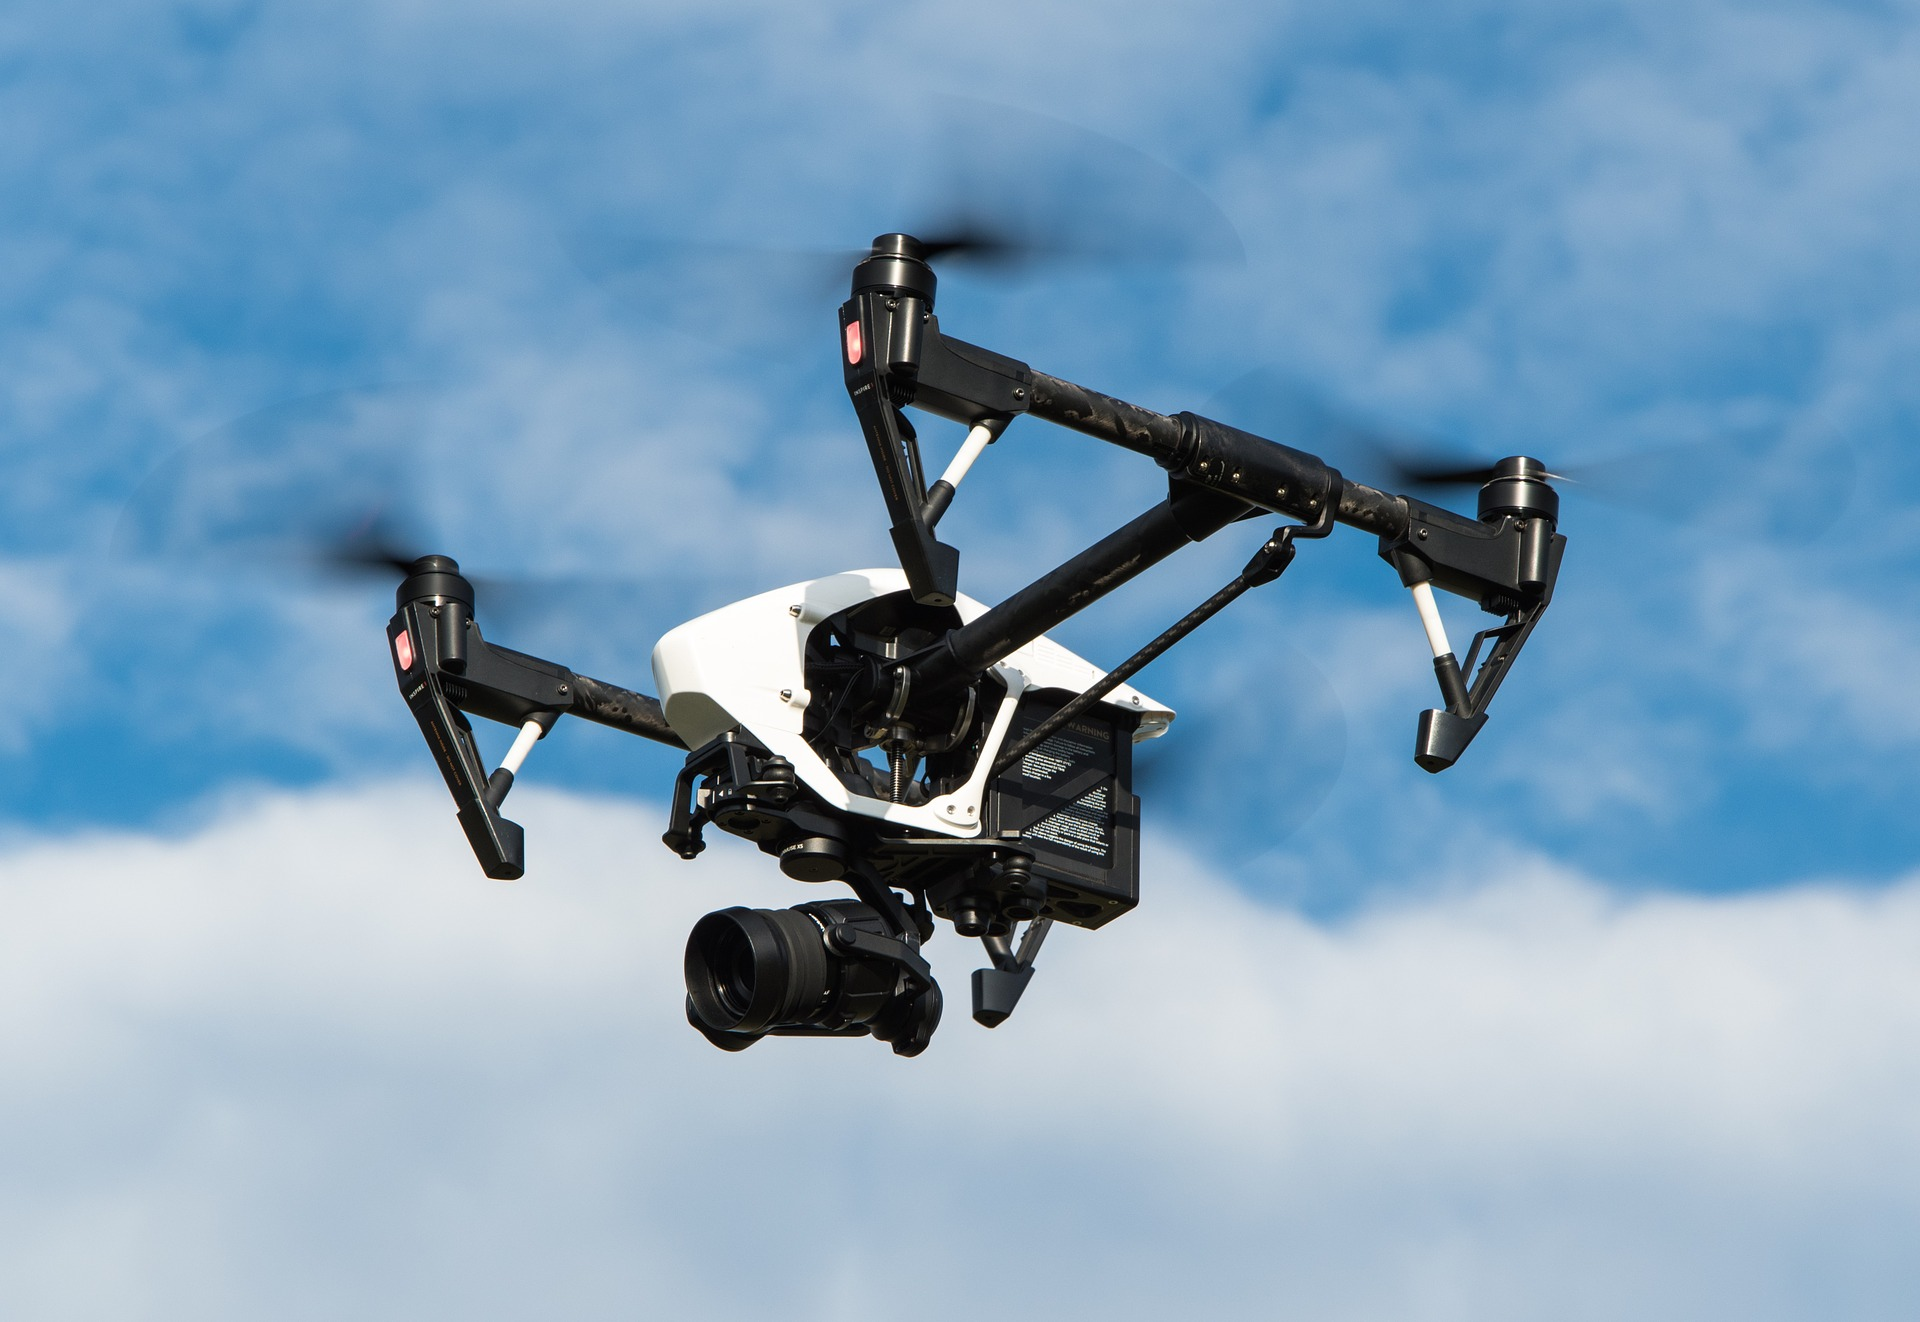 Drone Used for Narcotics Deliveries